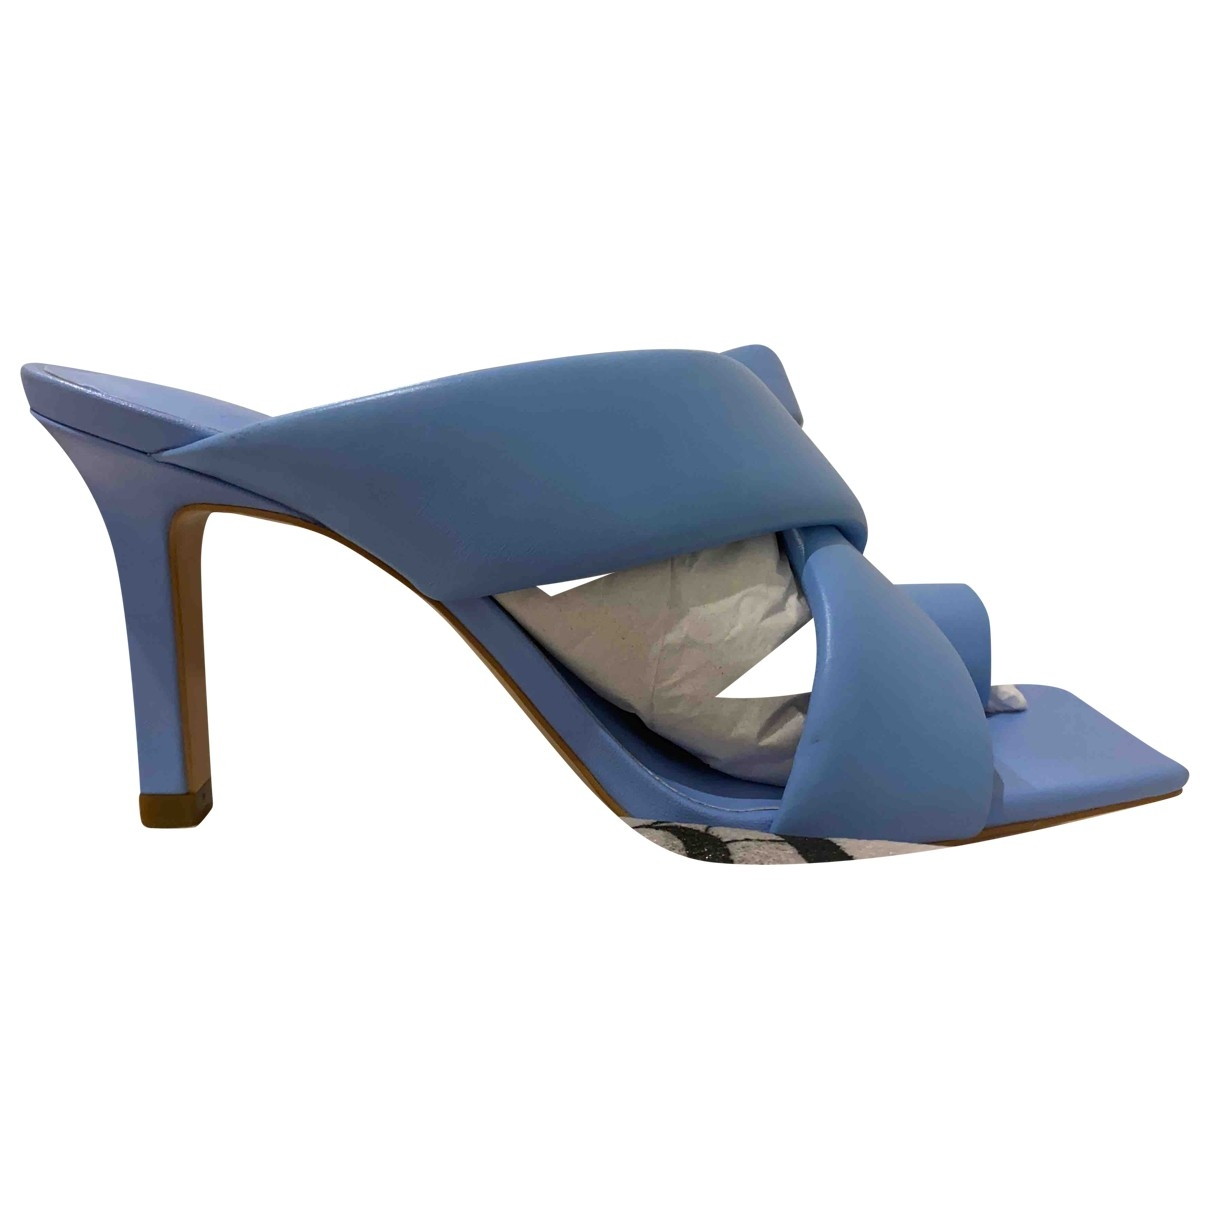 Zara \N Turquoise Leather Mules & Clogs for Women 38 EU